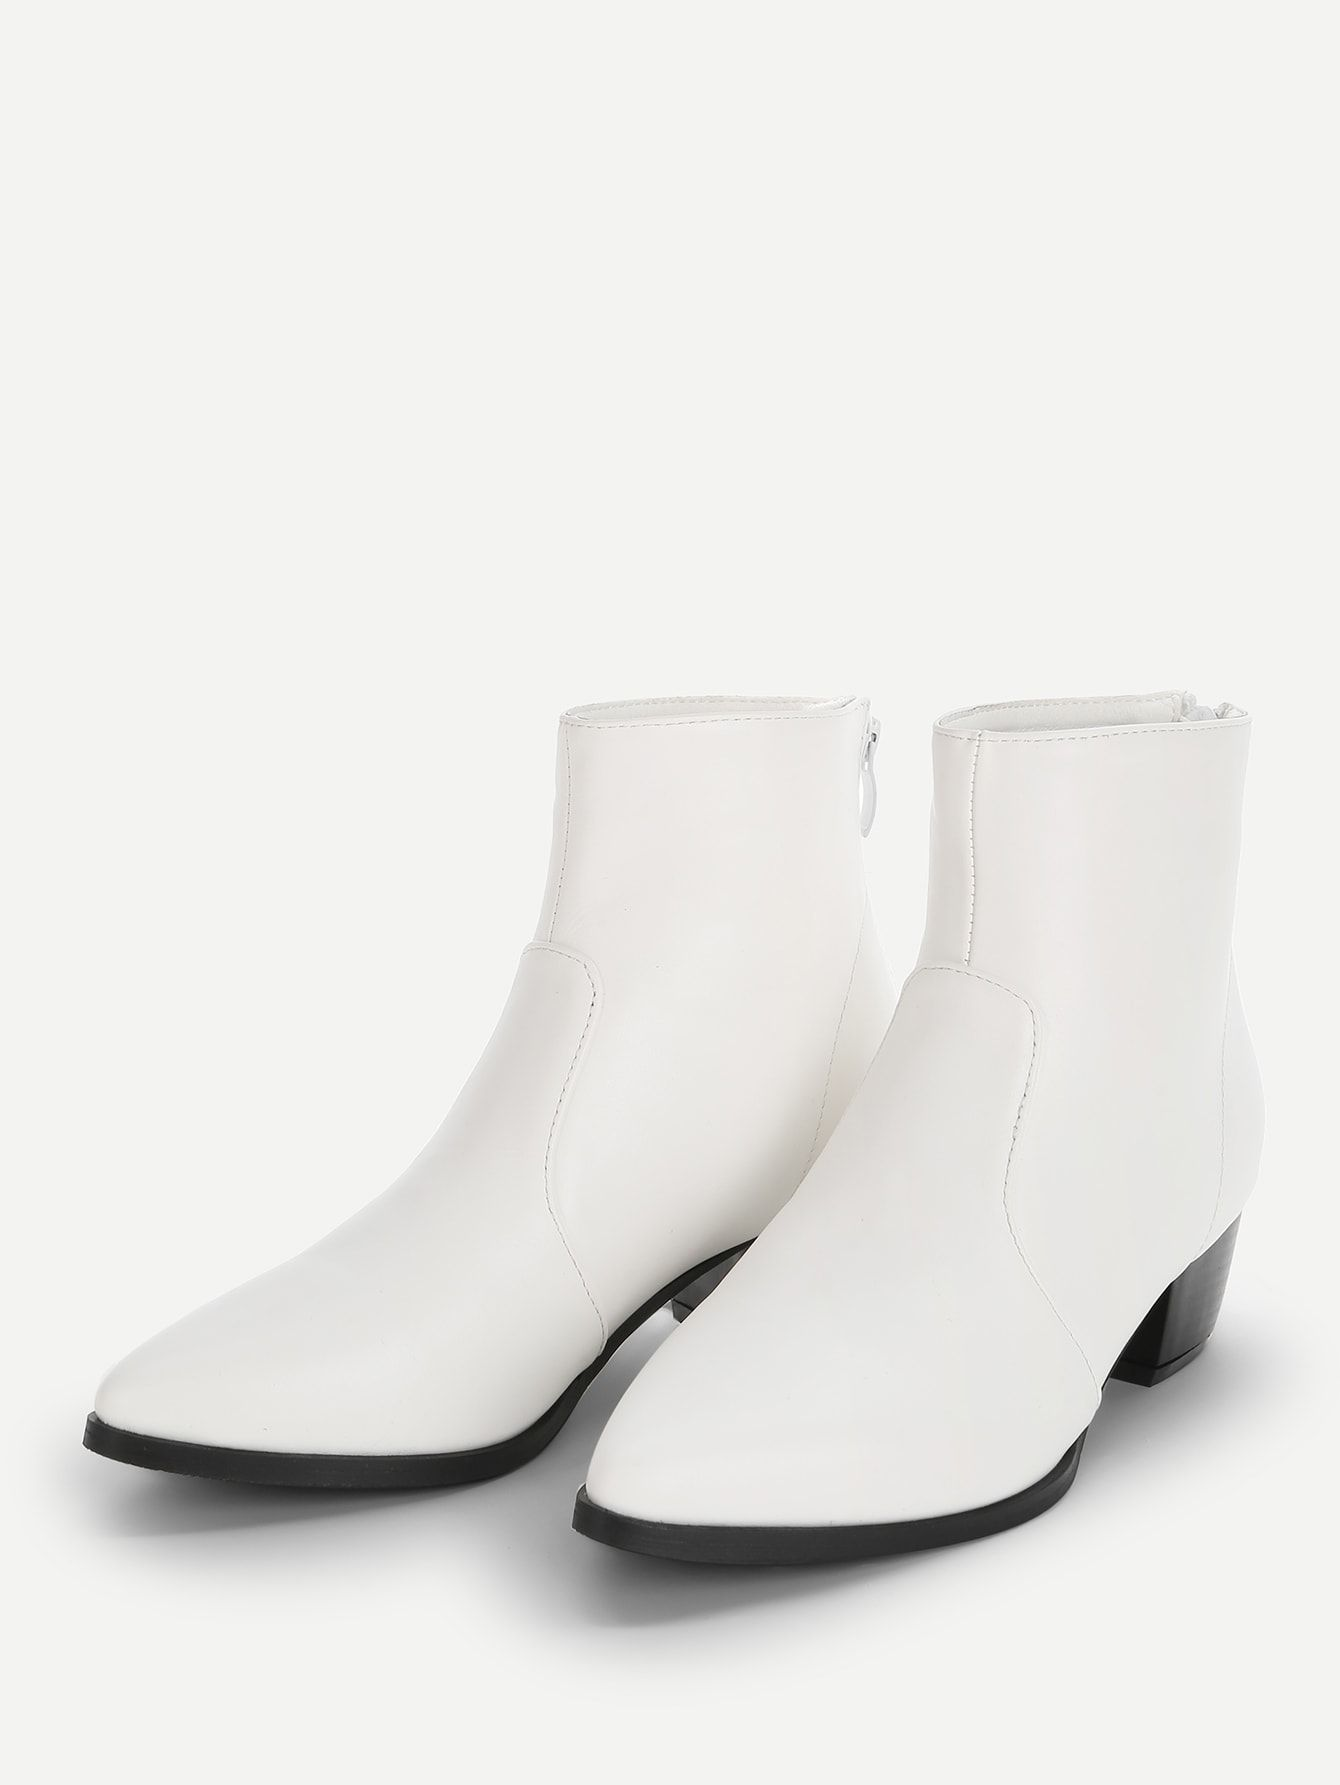 0b346afeda4 Casual Plain Ankle Back zipper White Low Heel Solid Point Toe Ankle Boots